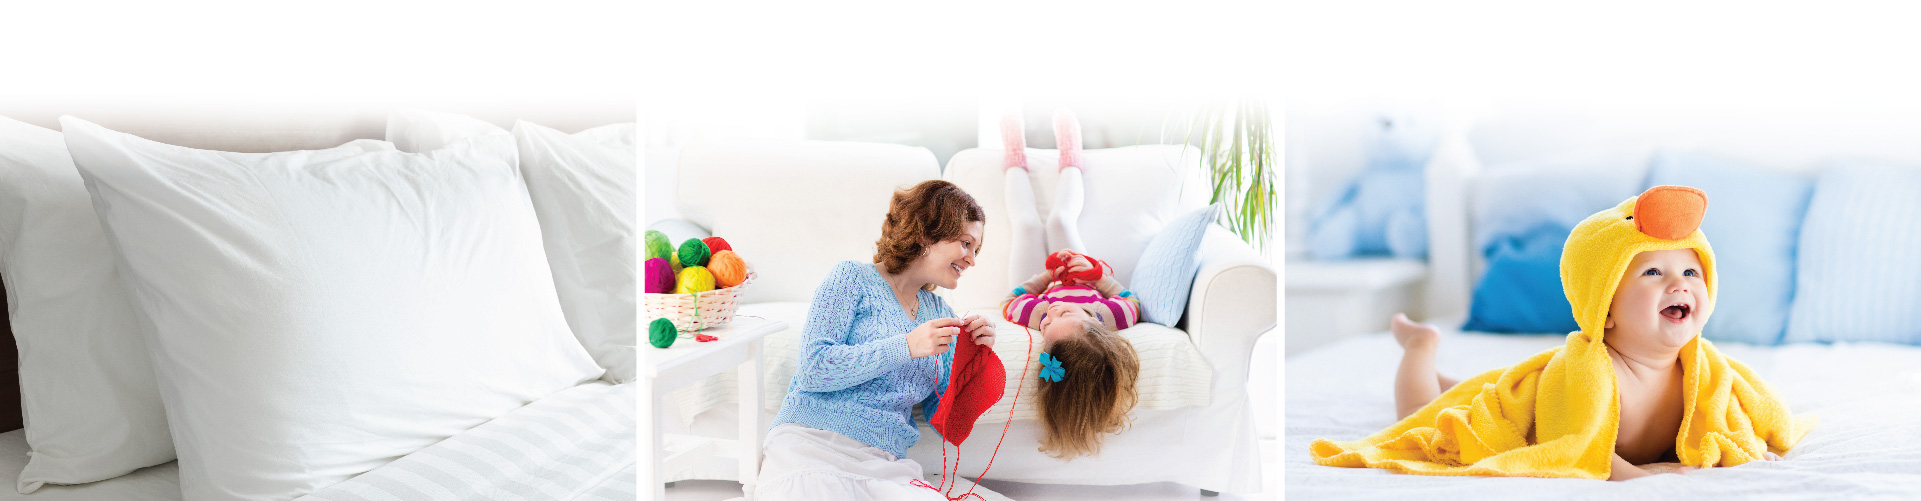 Pillow on a bed, a mother and daughter sitting by the couch knitting, a baby lying on a bed after bath time